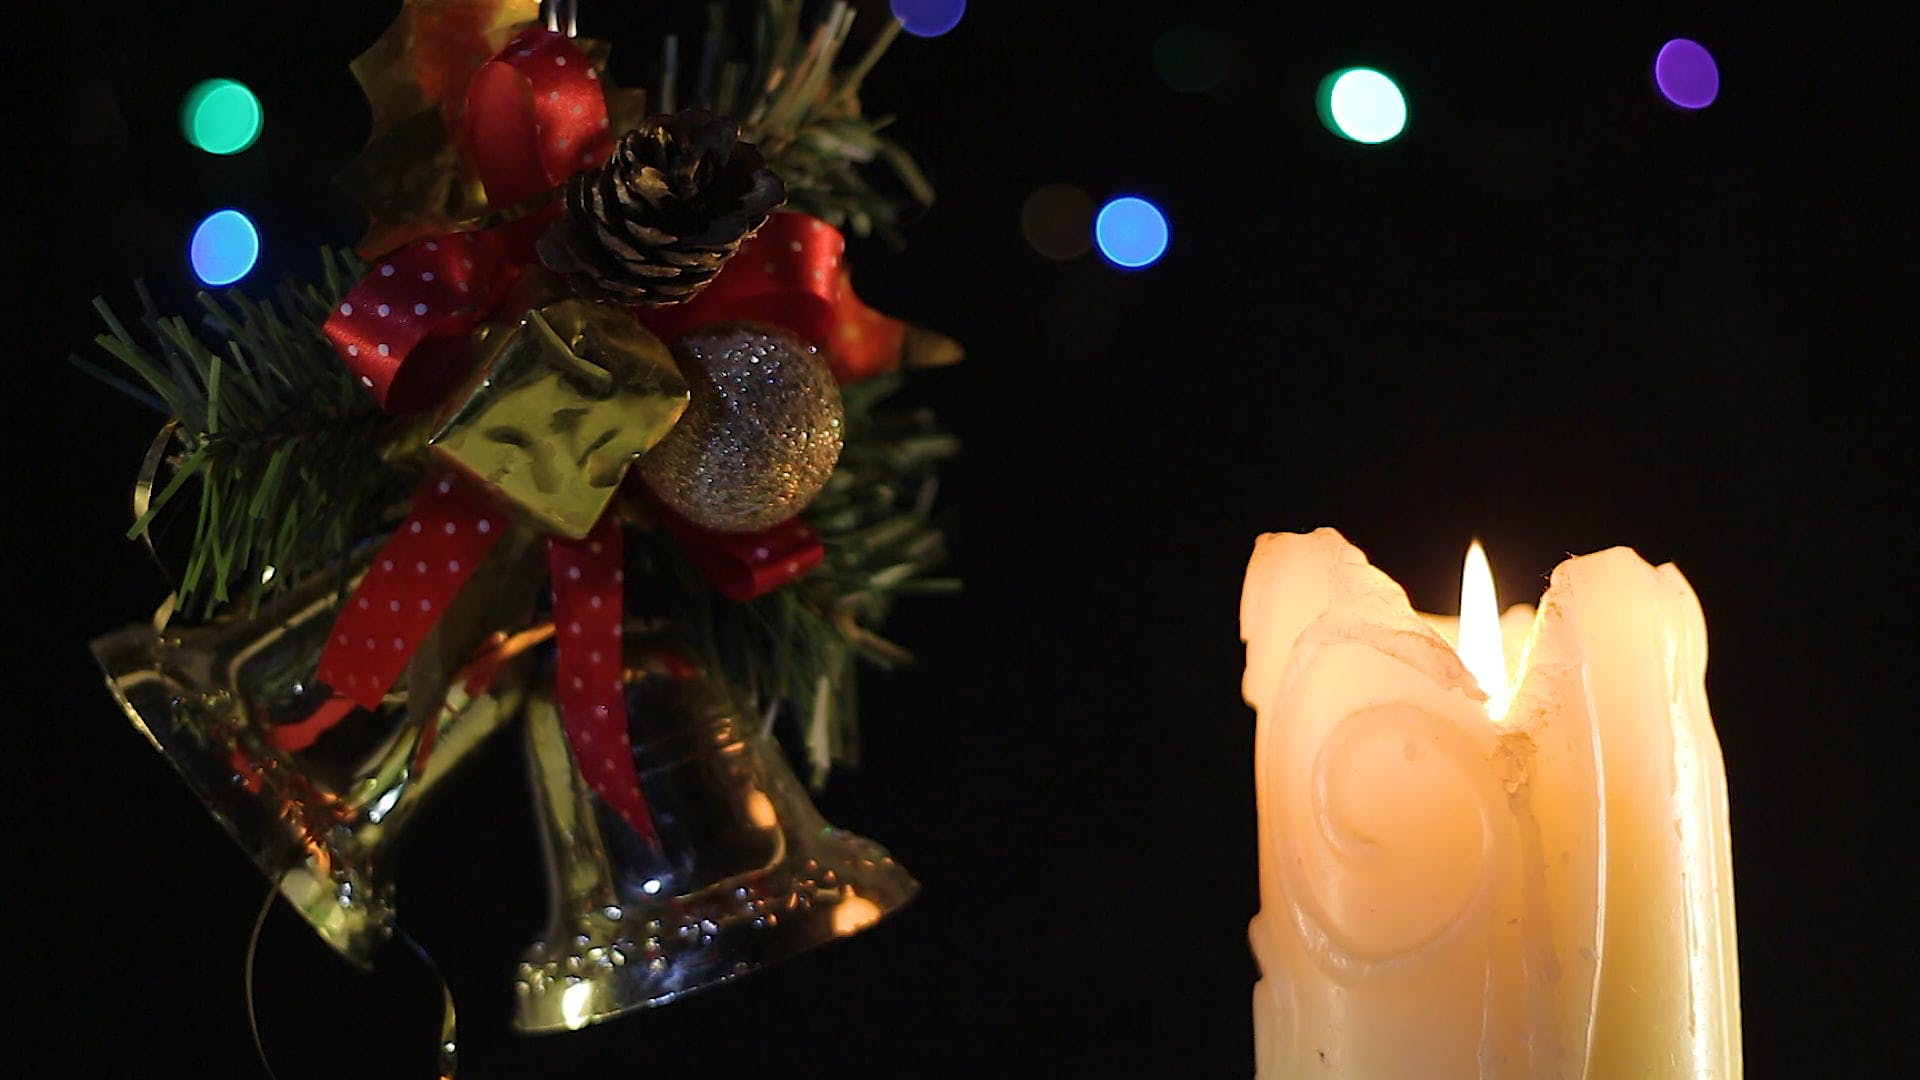 Christmas Ornaments And A Lighted Candle